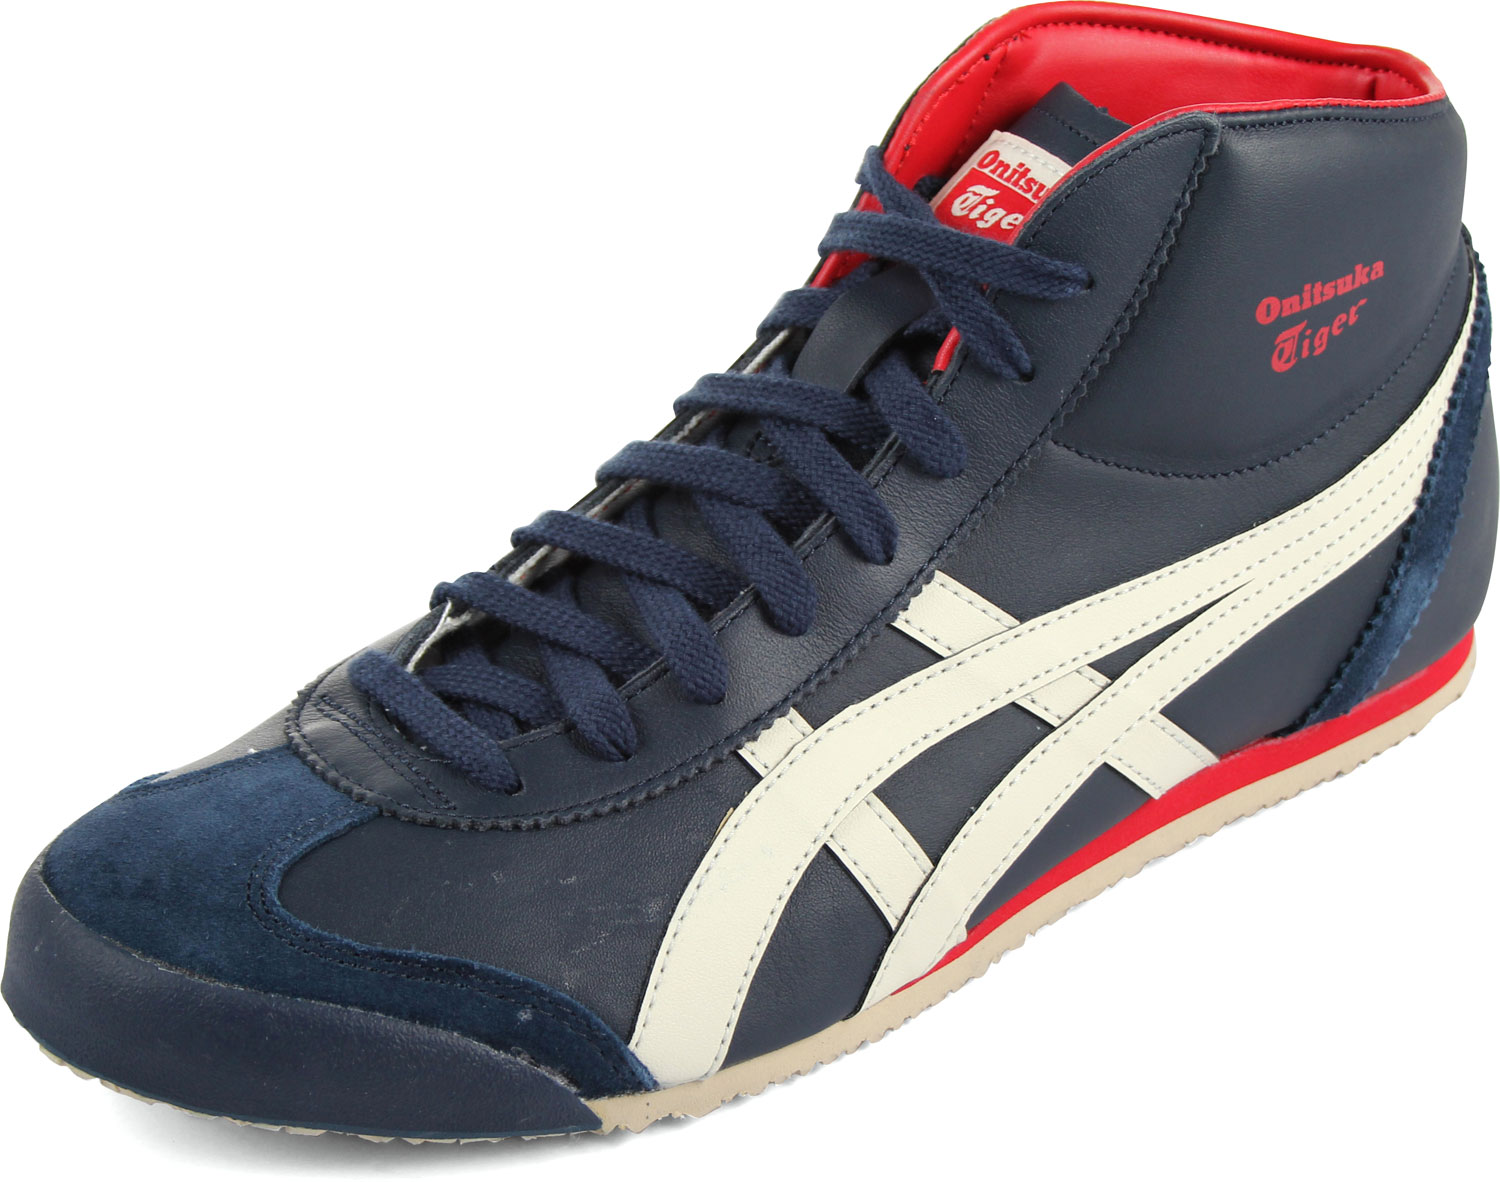 huge selection of 7419f 308da Asics - Mens Onitsuka Tiger Mexico Mid Runner Shoes